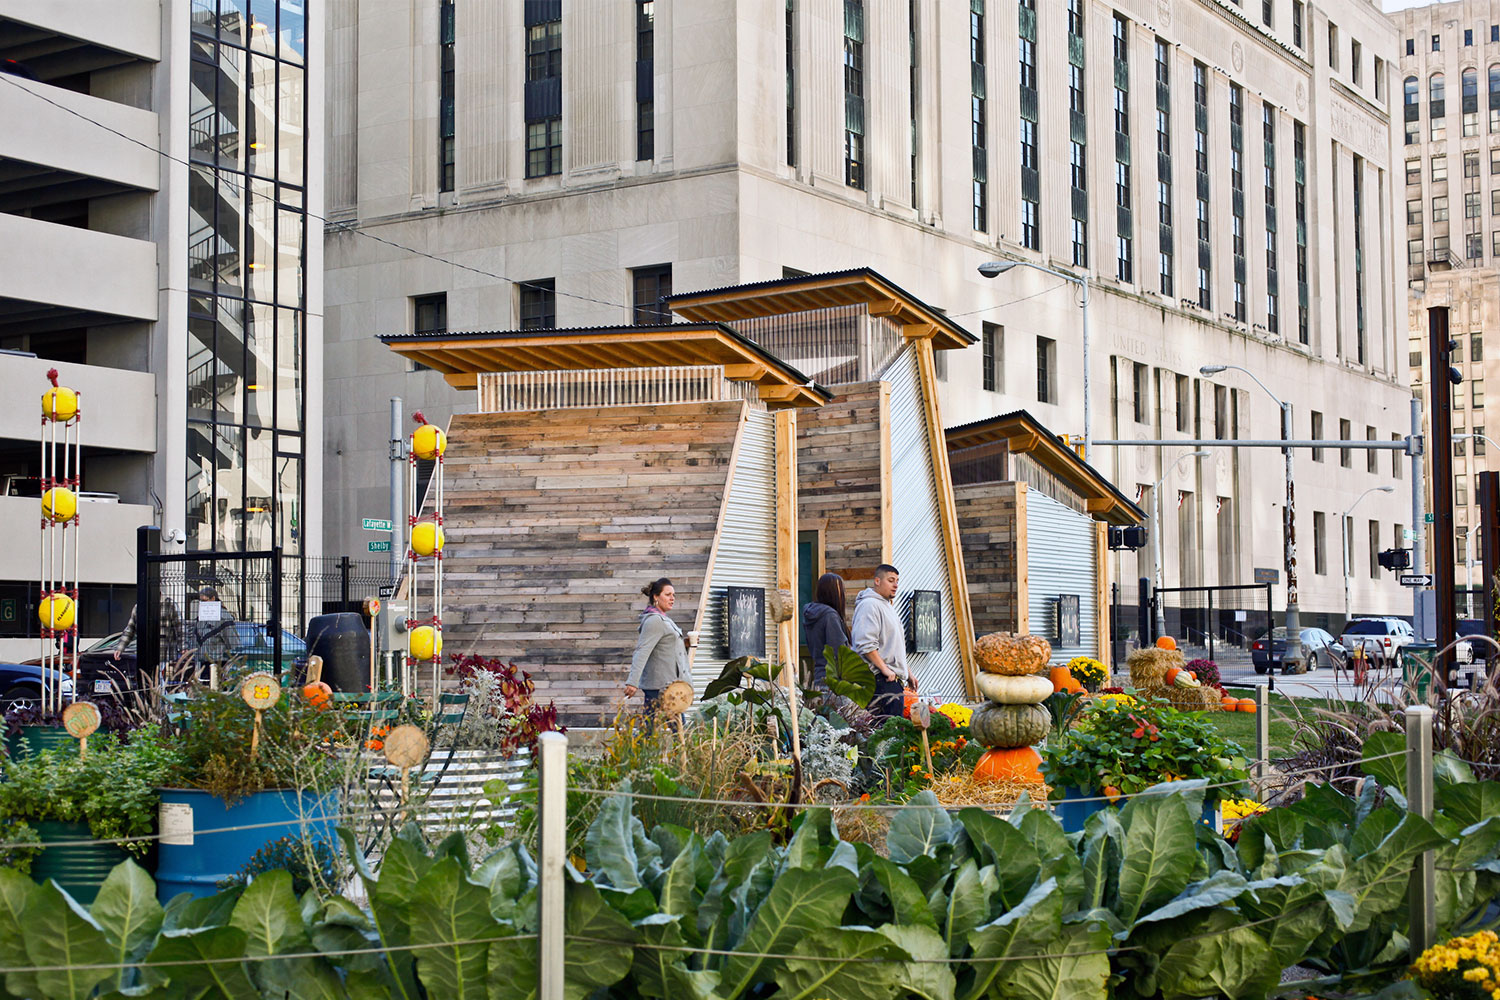 Detroit-Works-Green-Infrastructure_credit-Marvin-Shaouni_opt